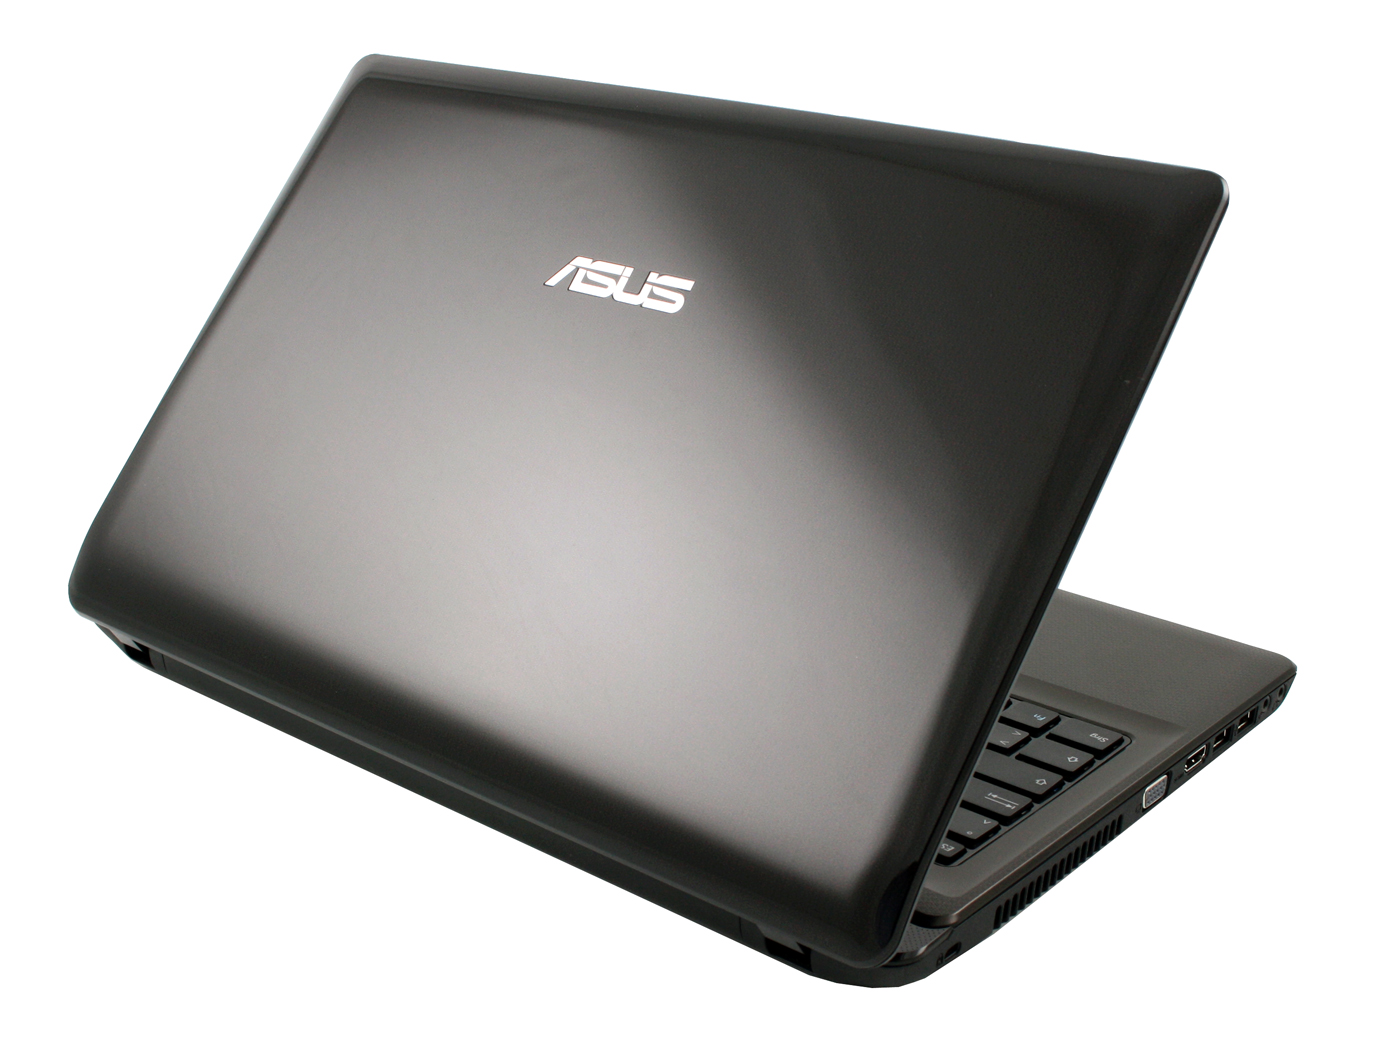 Asus K62Jr Notebook Fast Boot 64 BIT